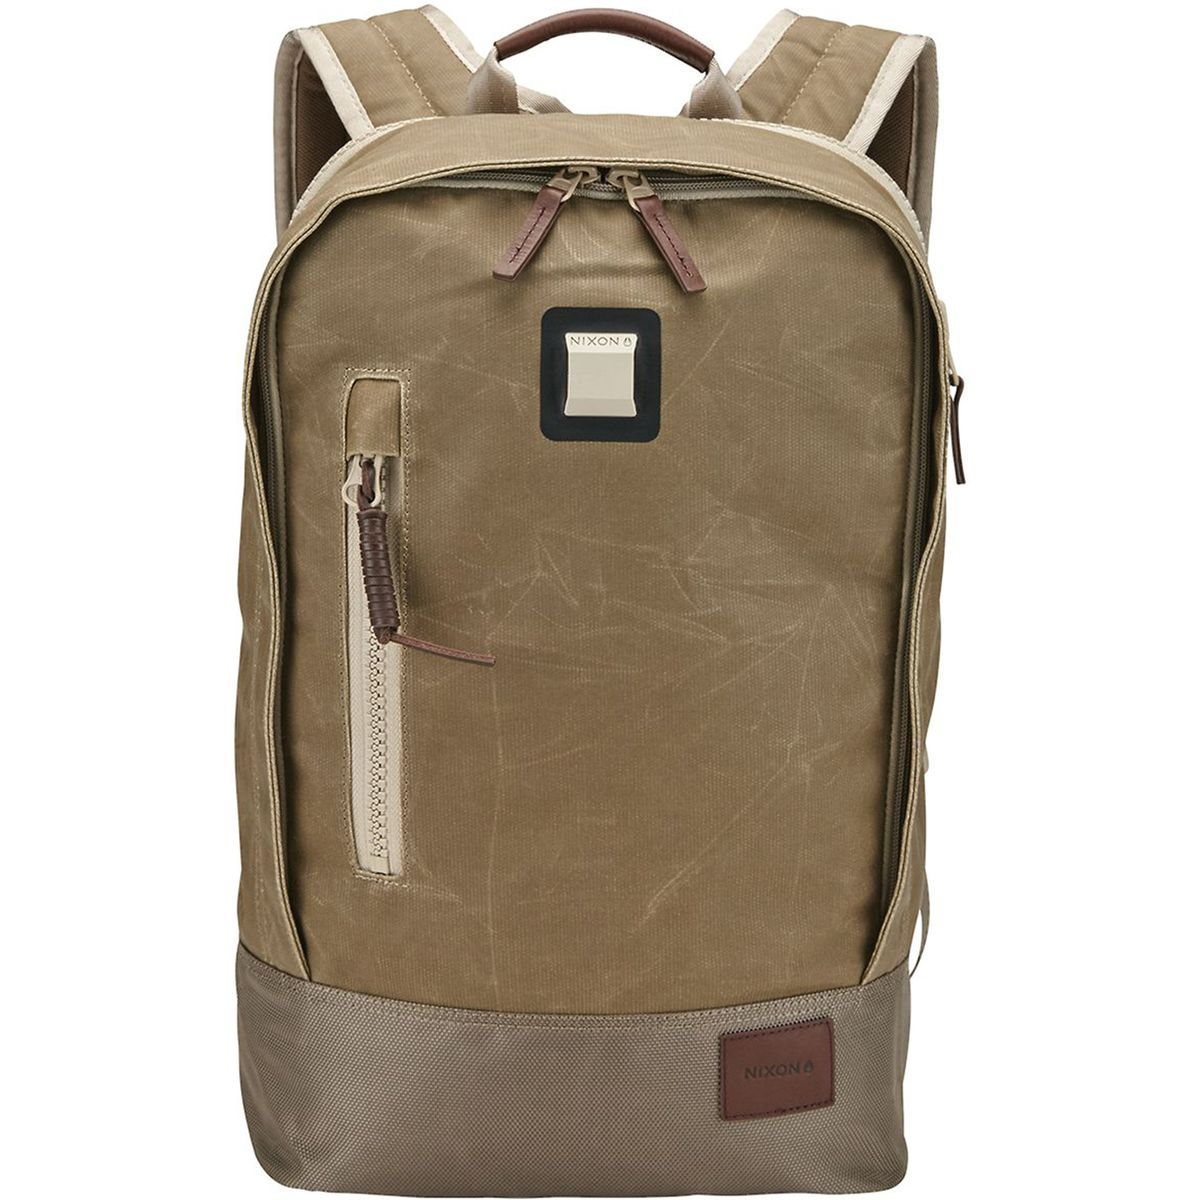 Nixon Base 19L Backpack Falcon, One Size